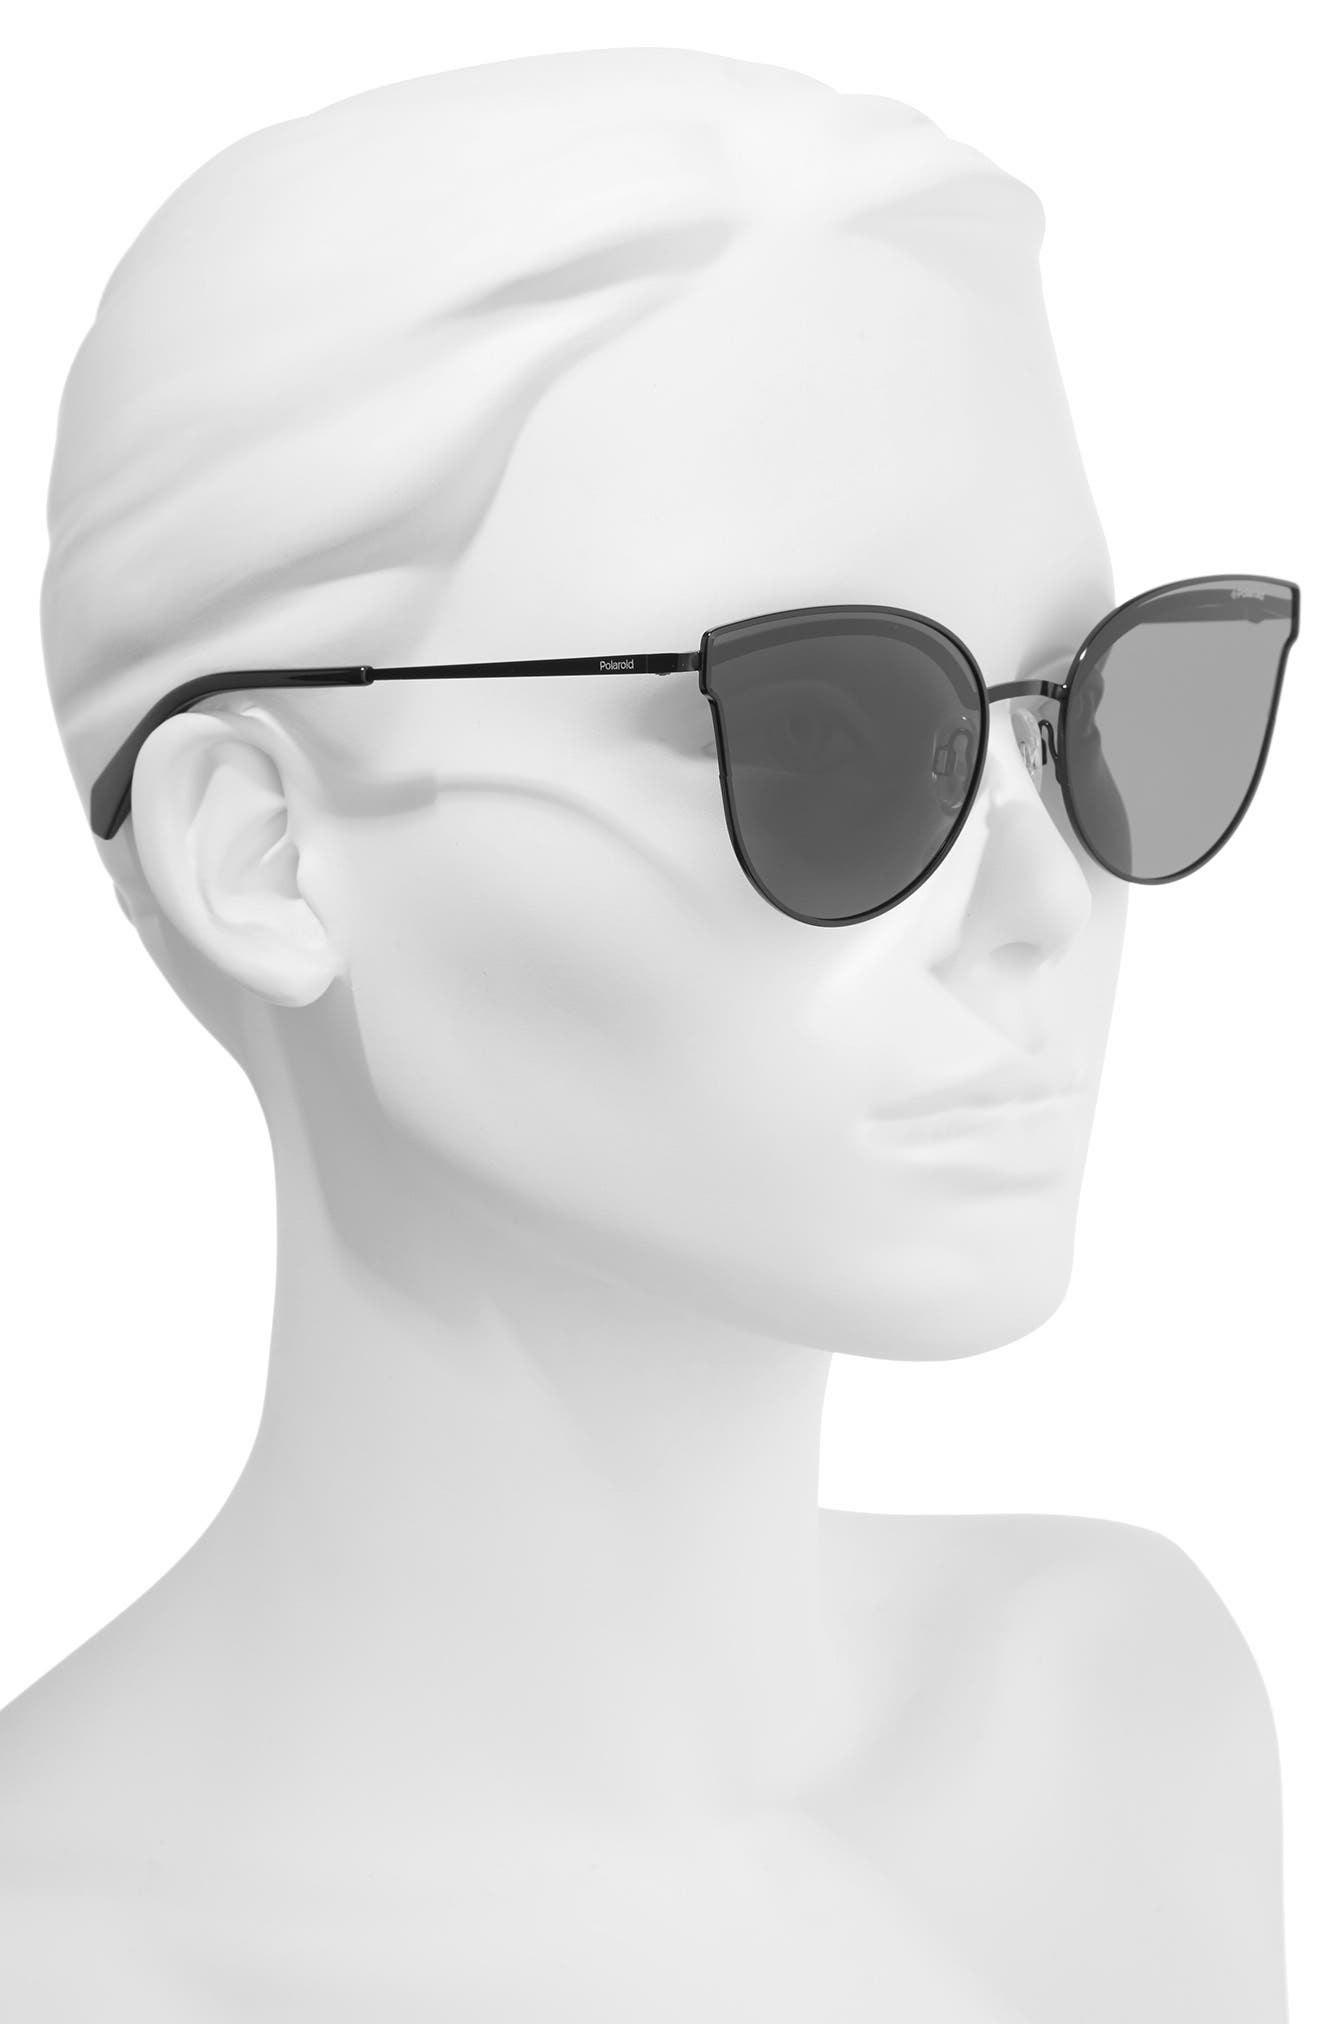 58mm Polarized Butterfly Sunglasses,                             Alternate thumbnail 2, color,                             001